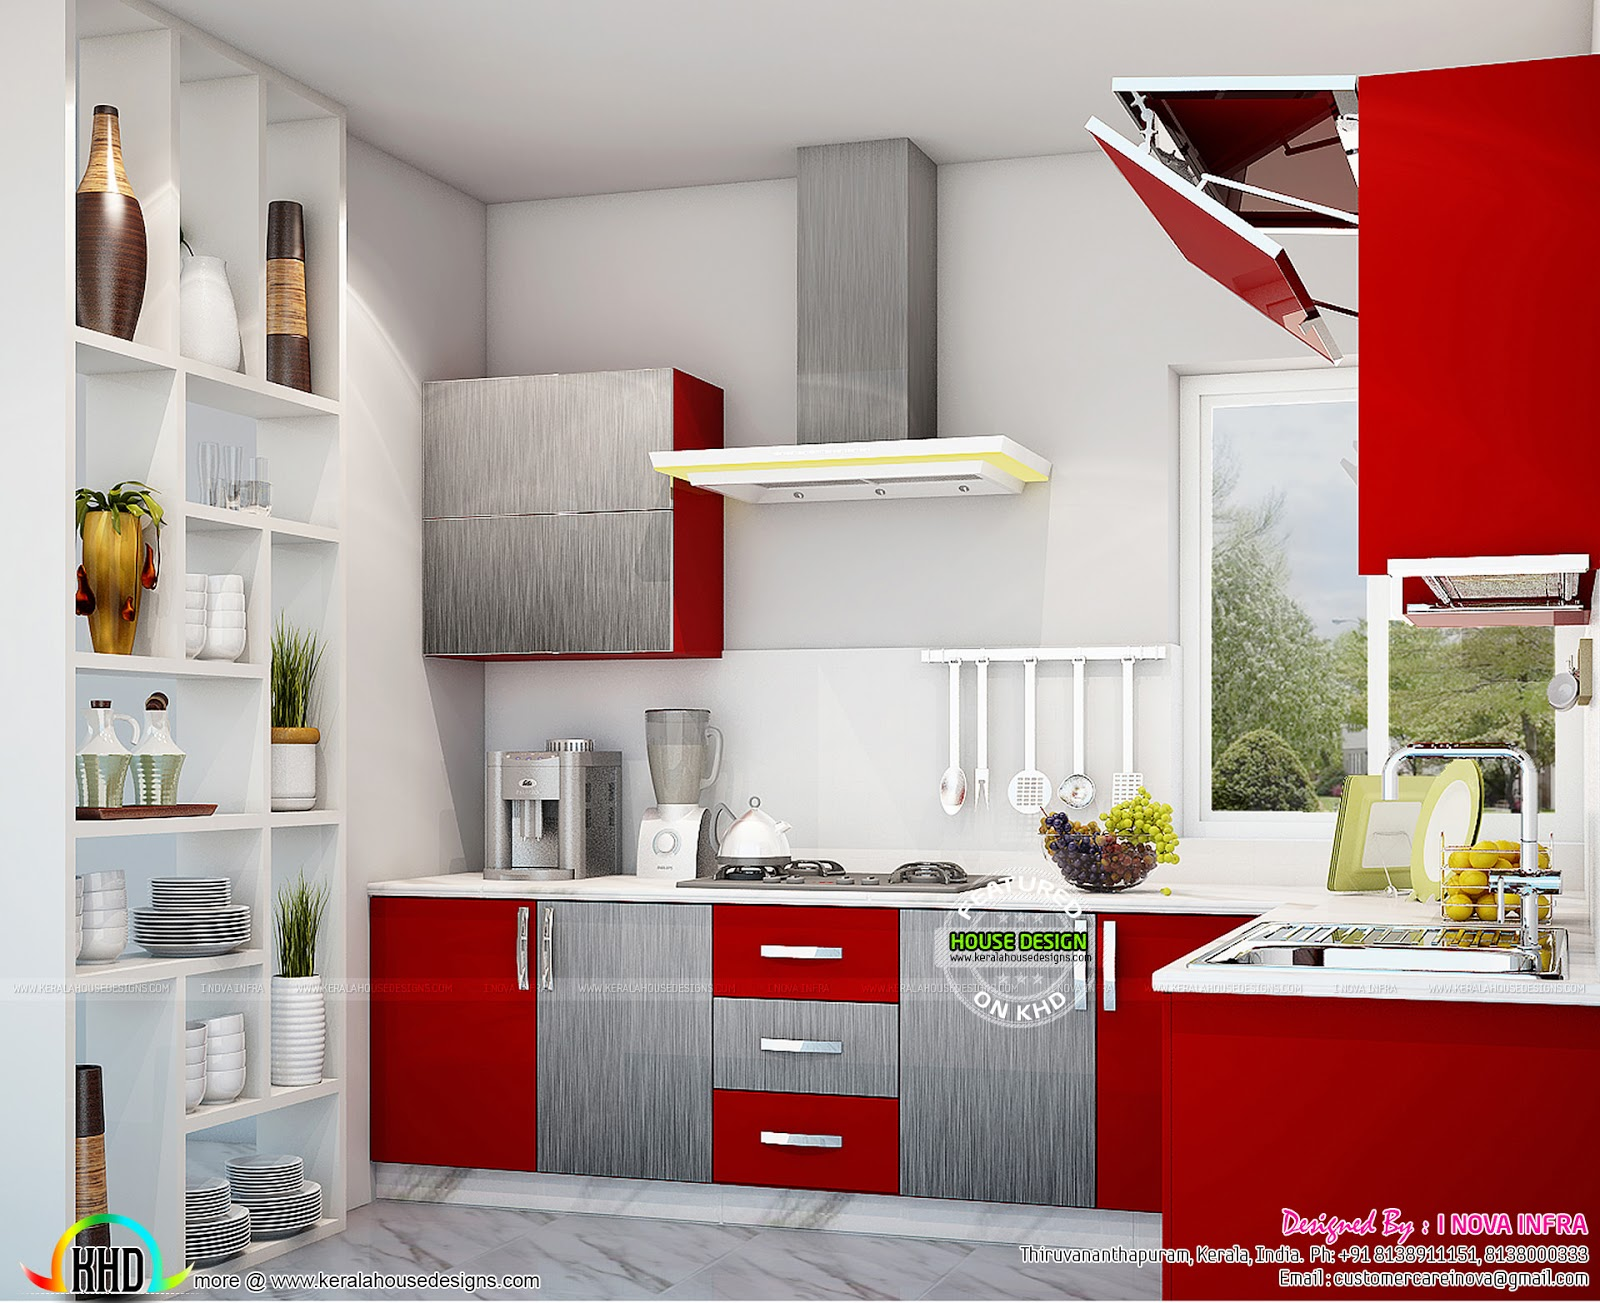 kitchen interior works at trivandrum kerala home design On kitchen interior images